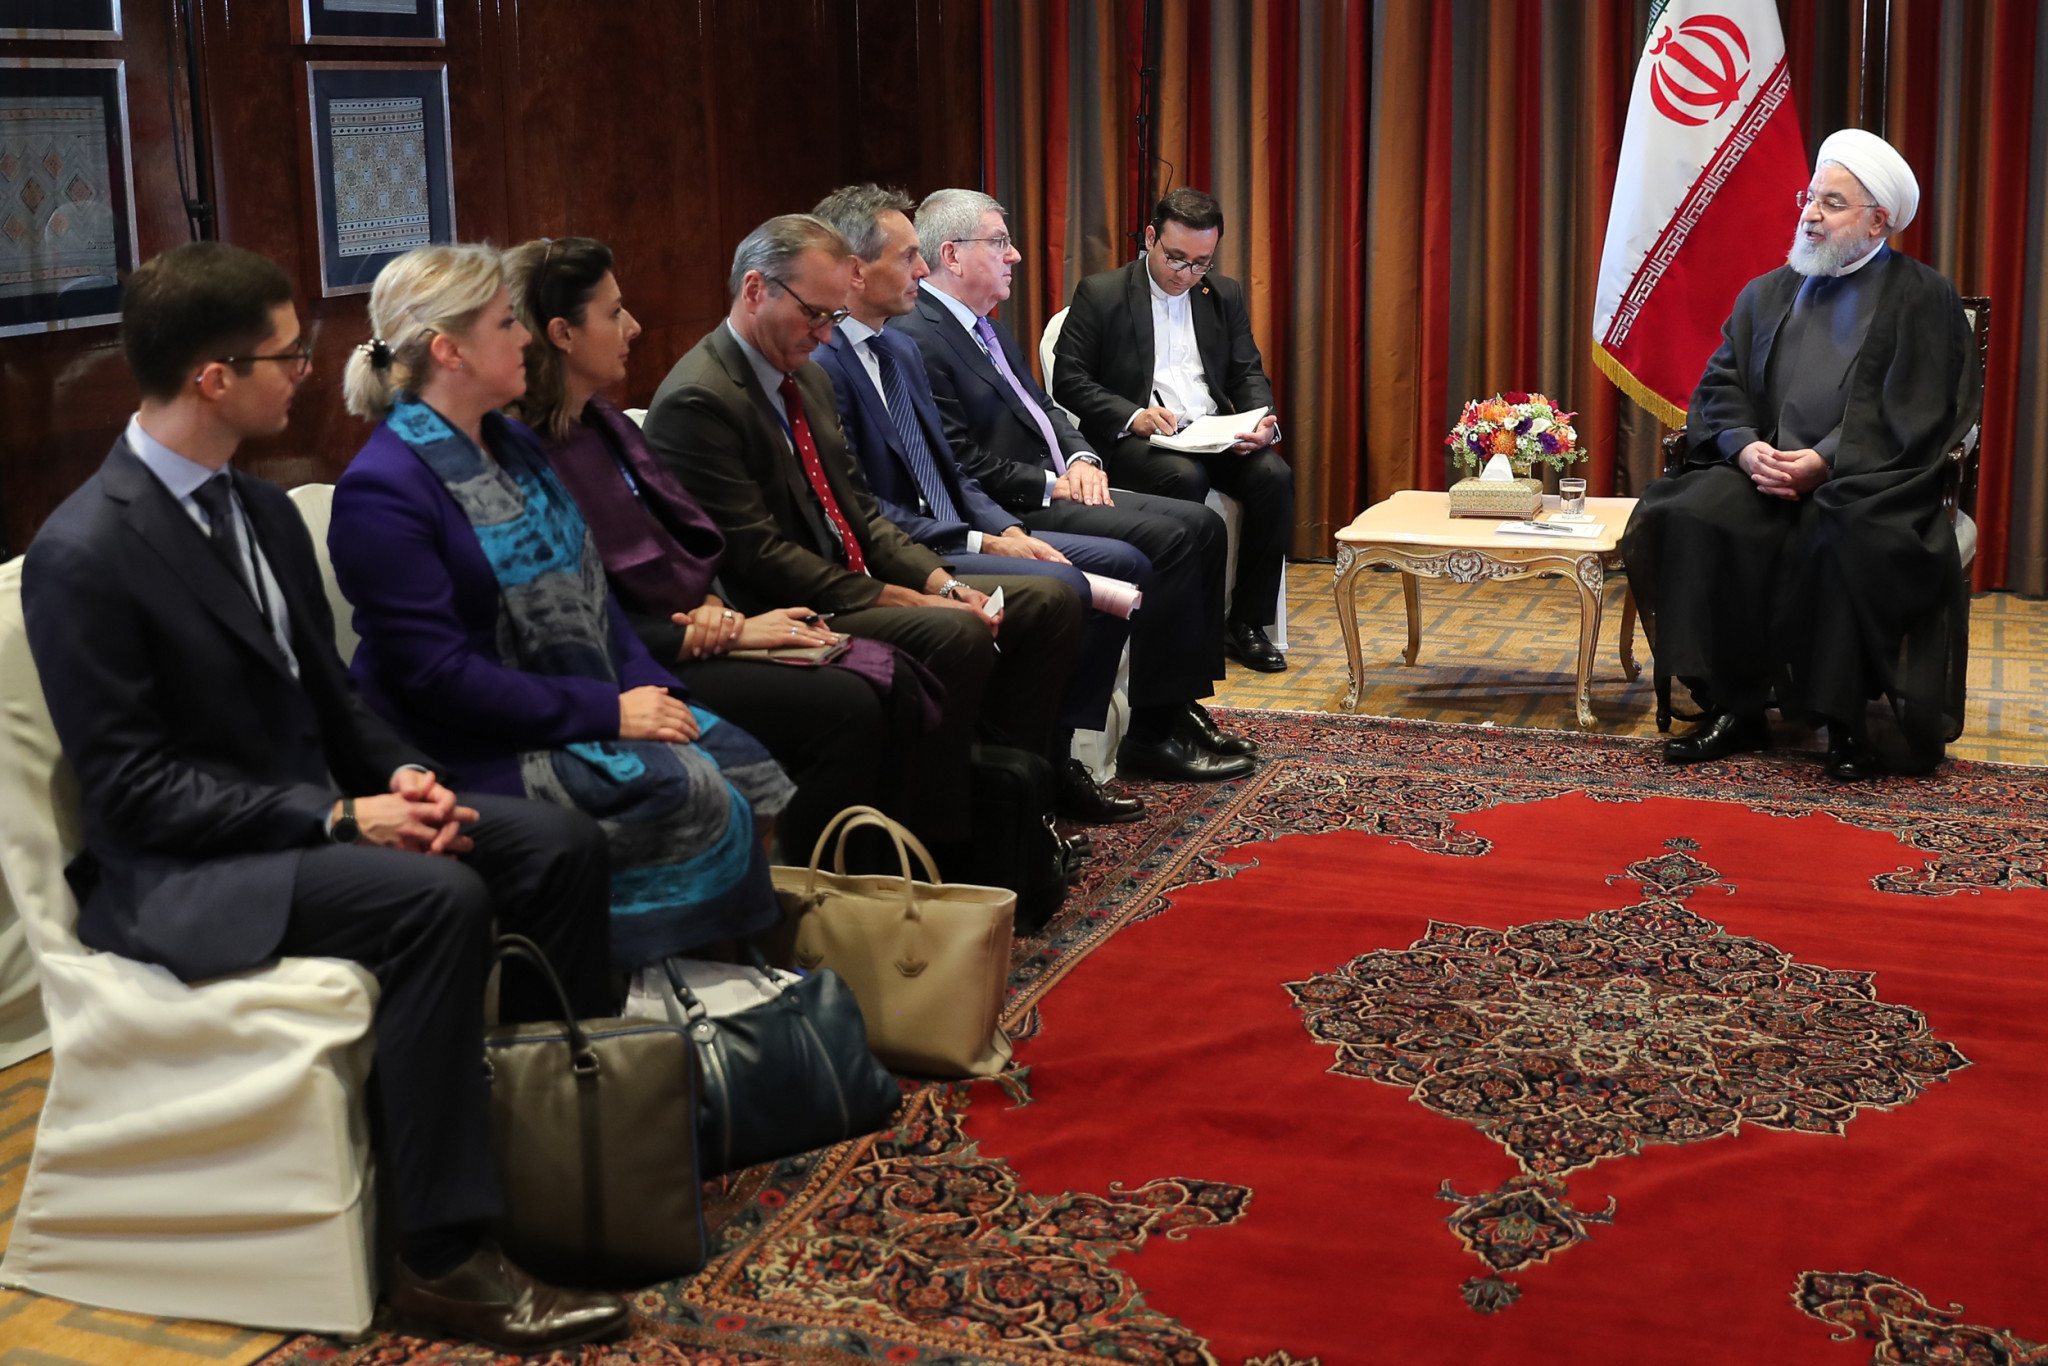 IOC officials, led by Thomas Bach, held talks with Iranian President Hassan Rouhani during a visit to the United Nations in New York City in September 2018 ©IOC